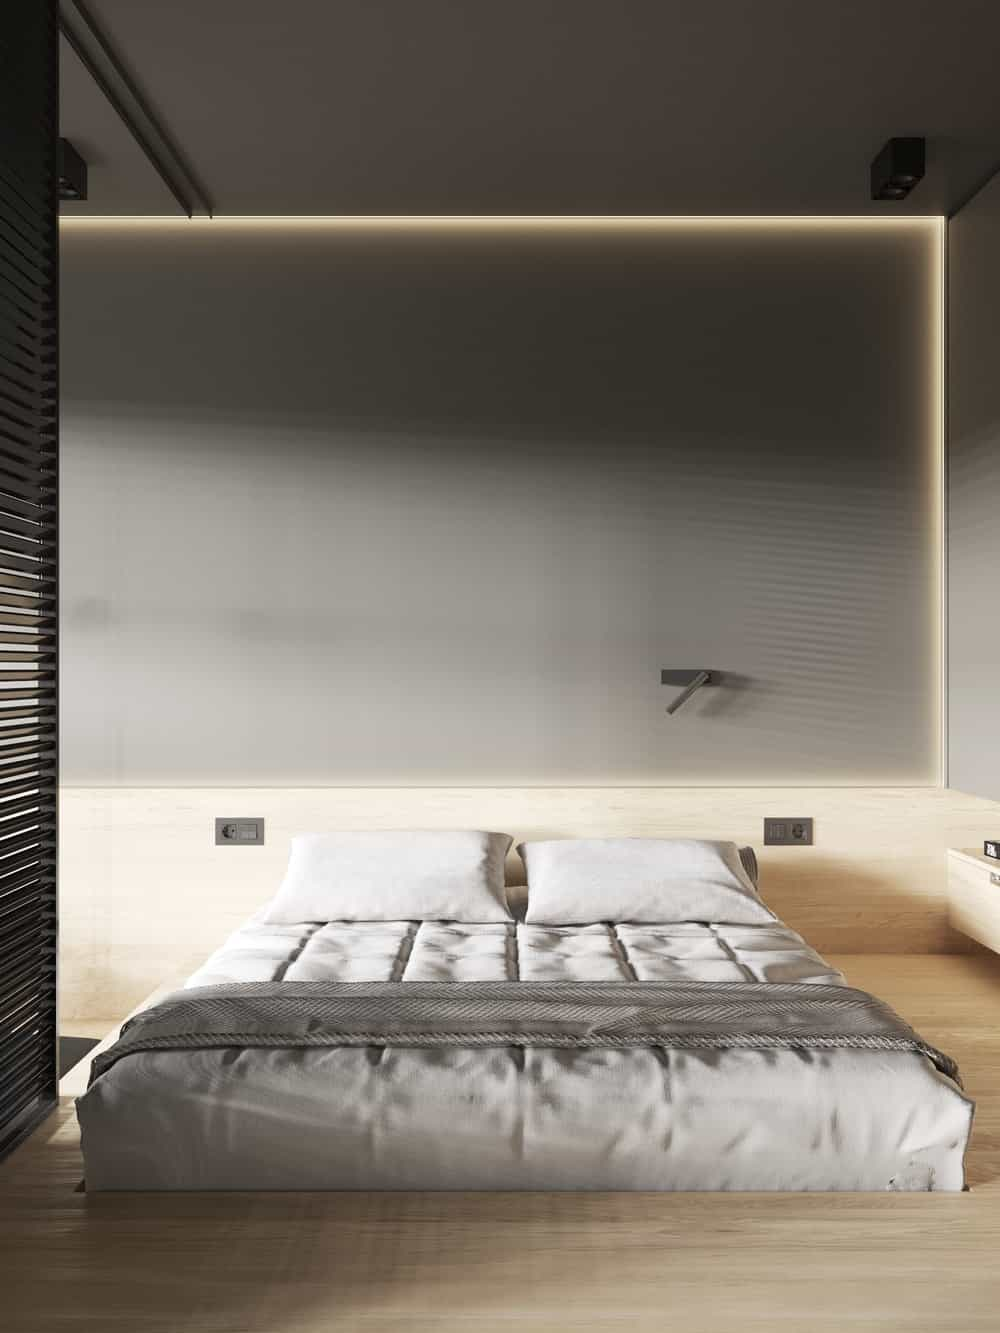 Primary bedroom in the Goose designed by Cartelle Design.